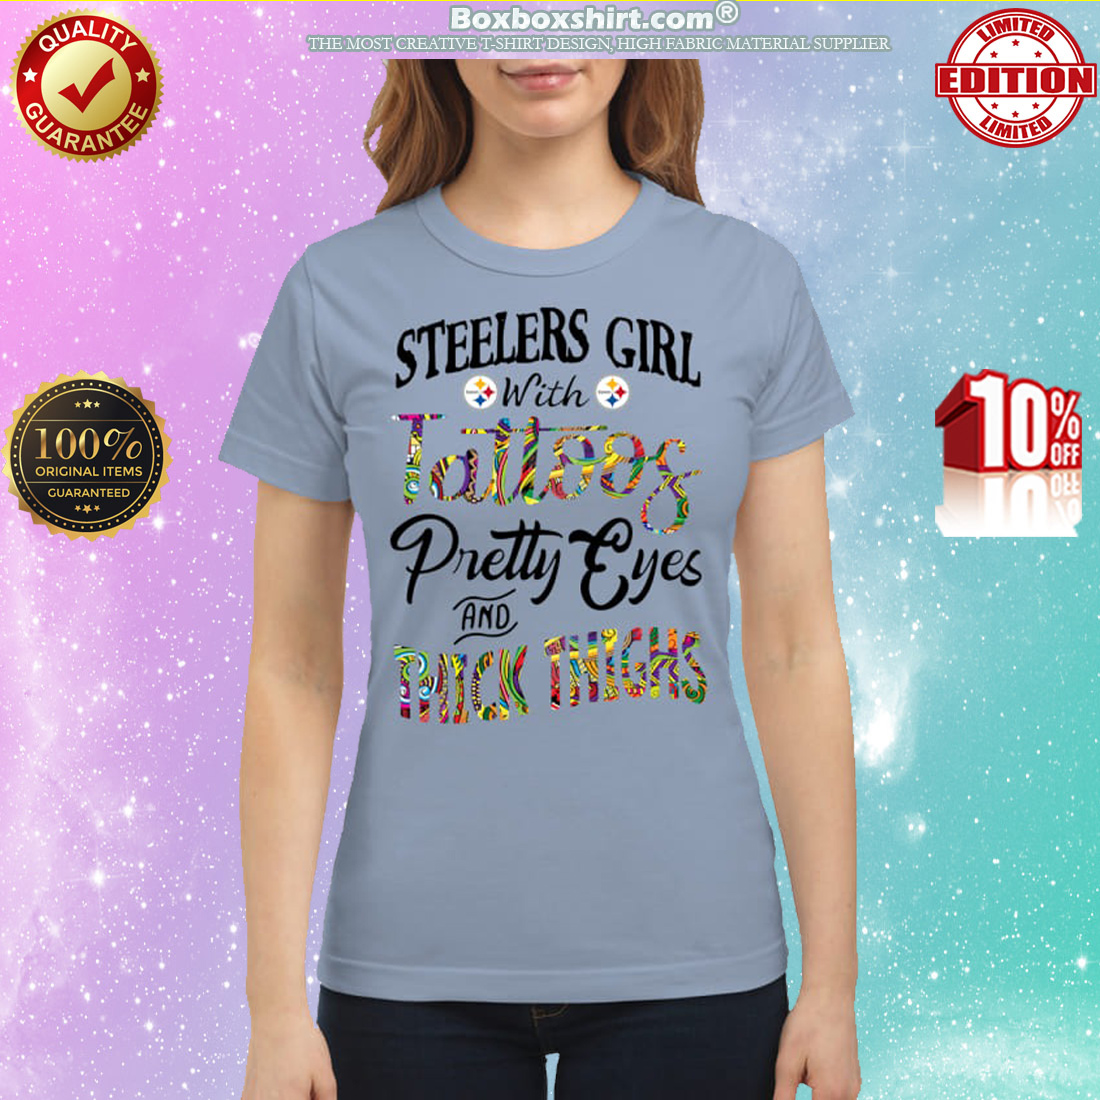 Steelers girl with tattoos pretty eyes and thick thighs classic shirt